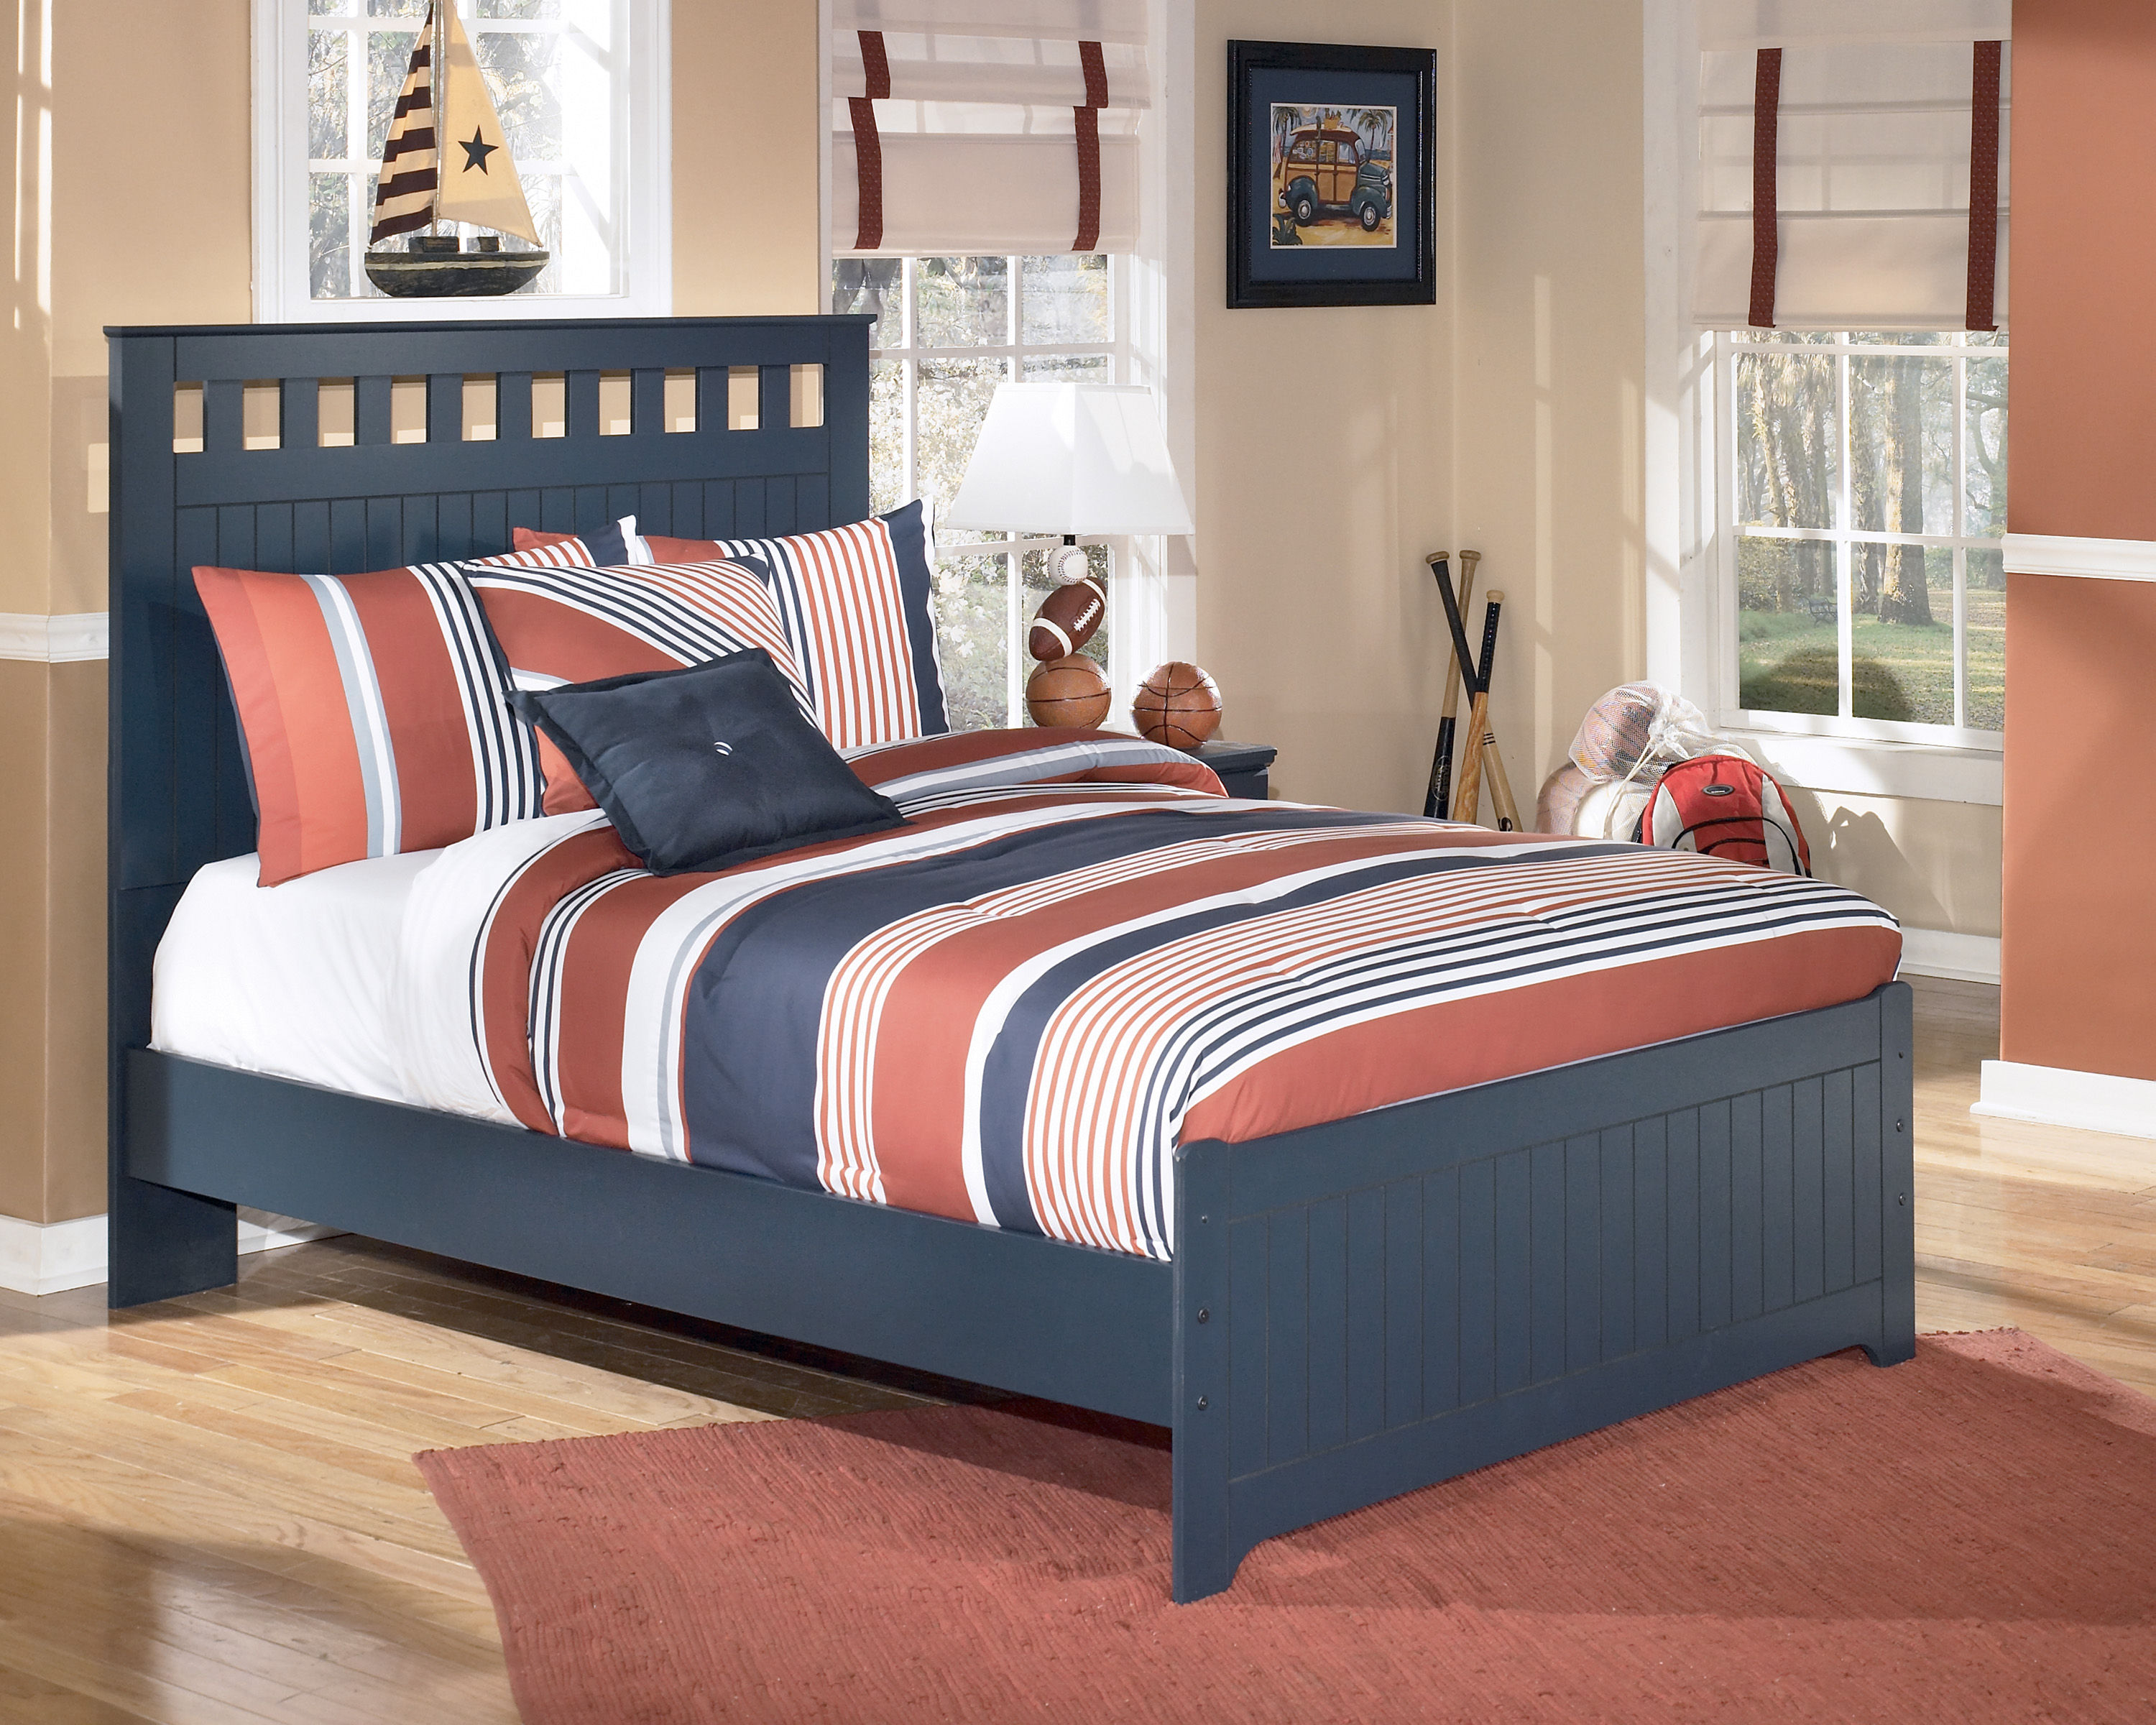 Ashley Furniture Leo Blue Full Panel Bed The Classy Home